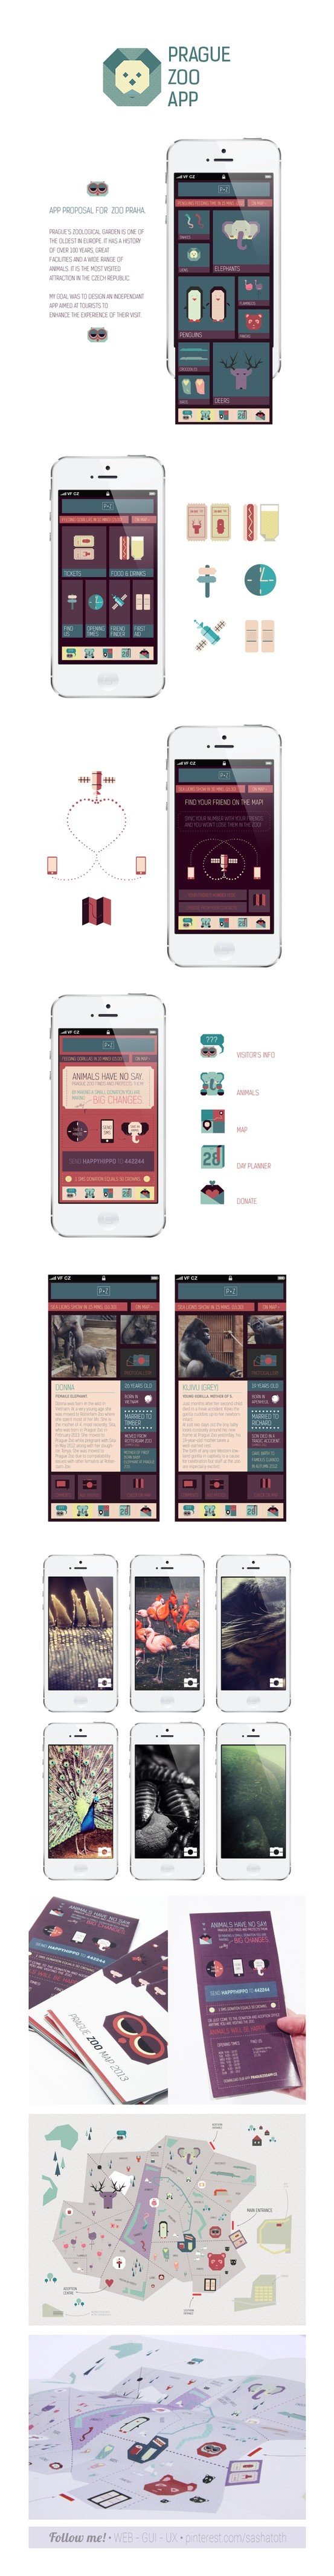 Prague Zoo application concept by Alina Kotova.